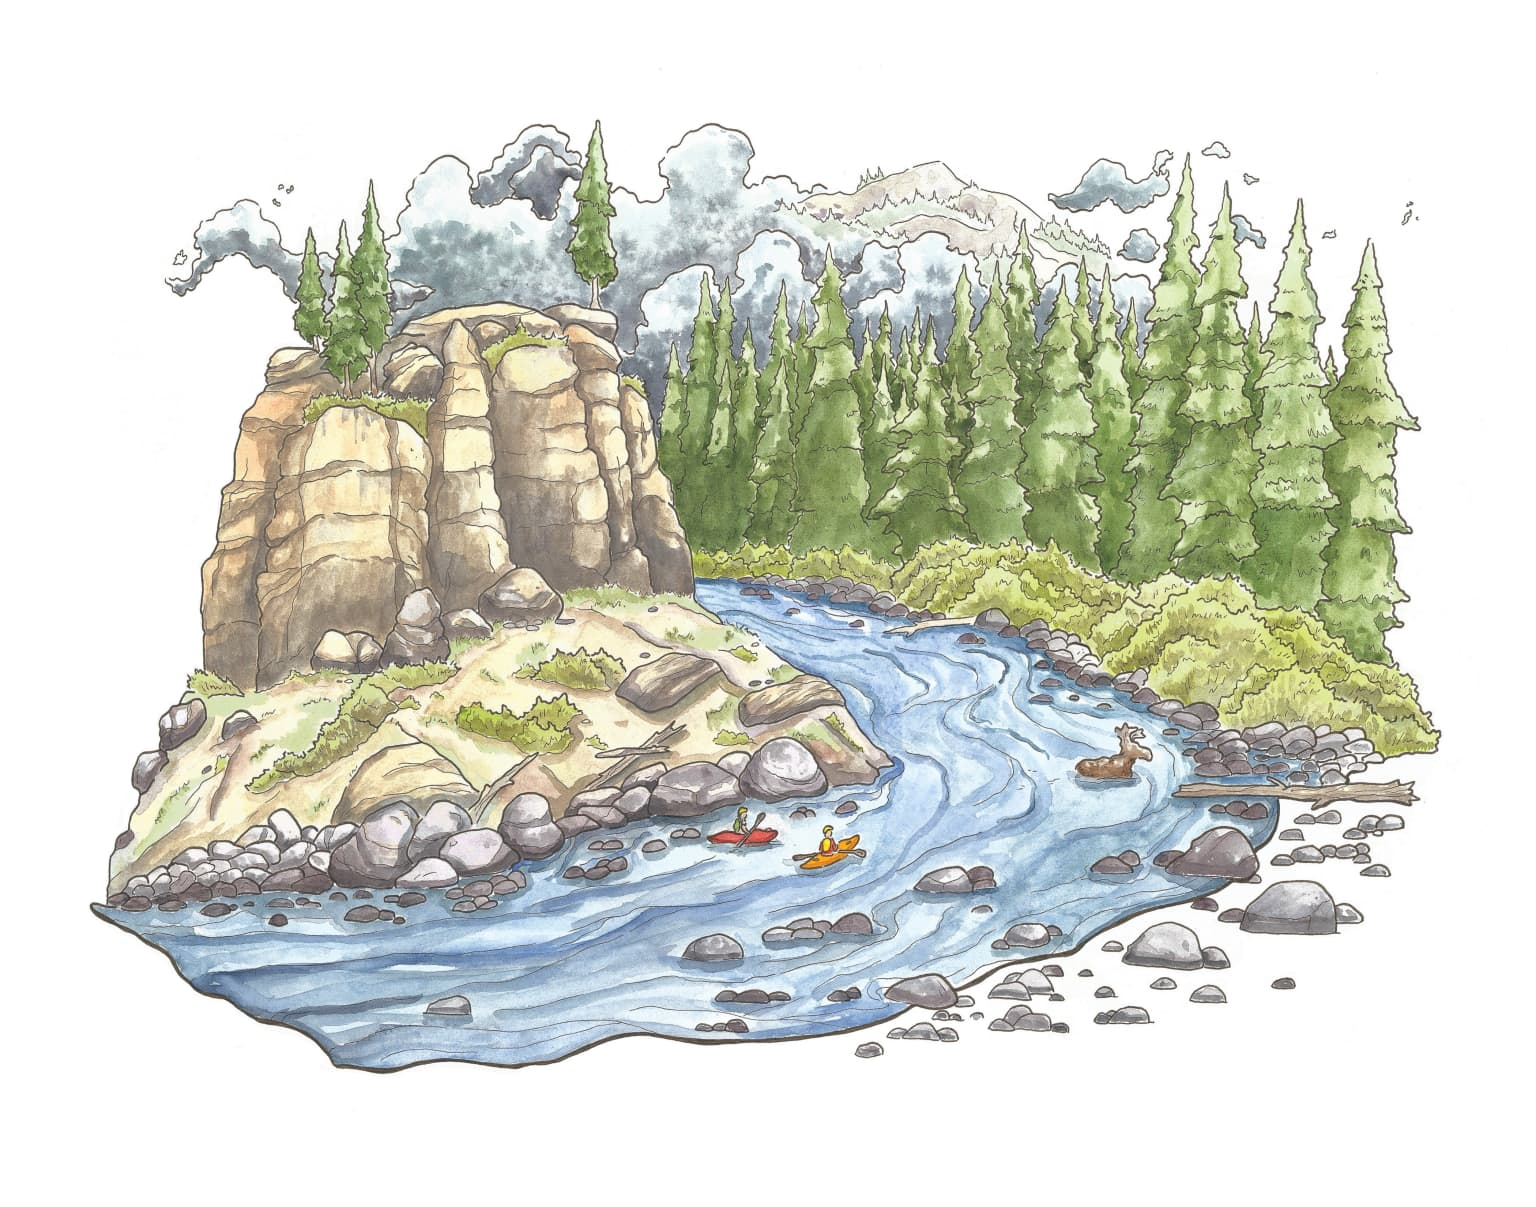 Personal River Illustrations